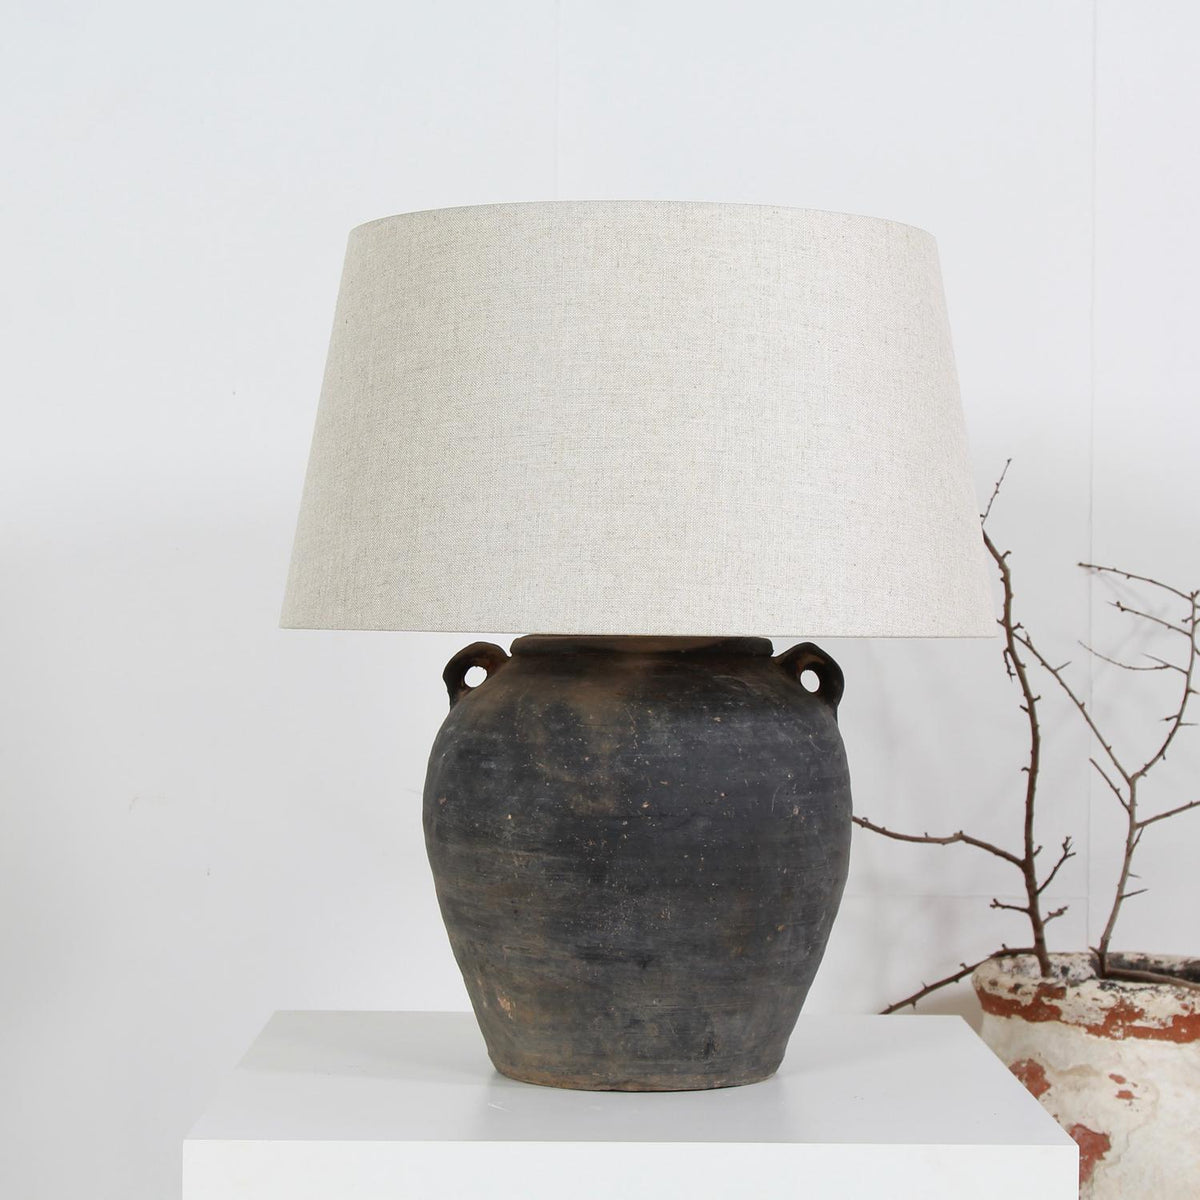 AUTHENTIC UNGLAZED STORAGE JAR CONVERTED Into LAMP WITH NATURAL LINEN SHADE